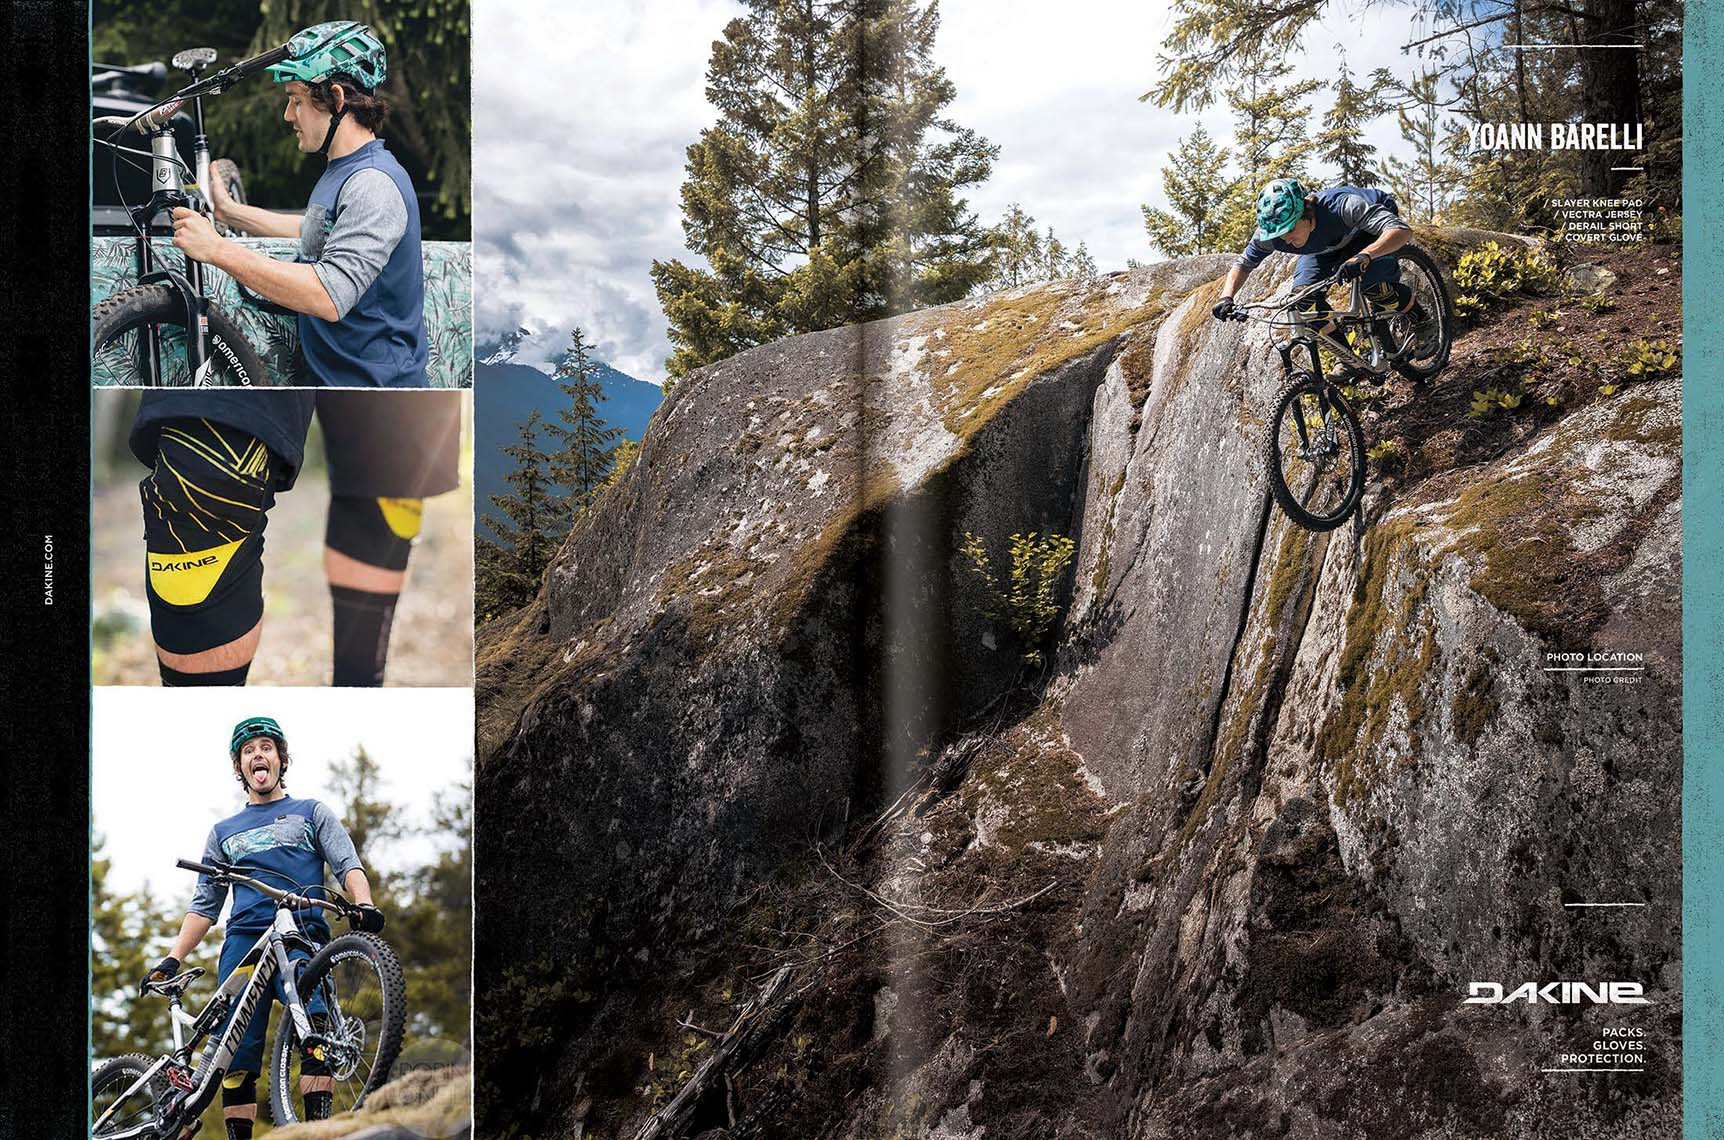 Dakine Bike Ad with Yoann Barelli - Robin O